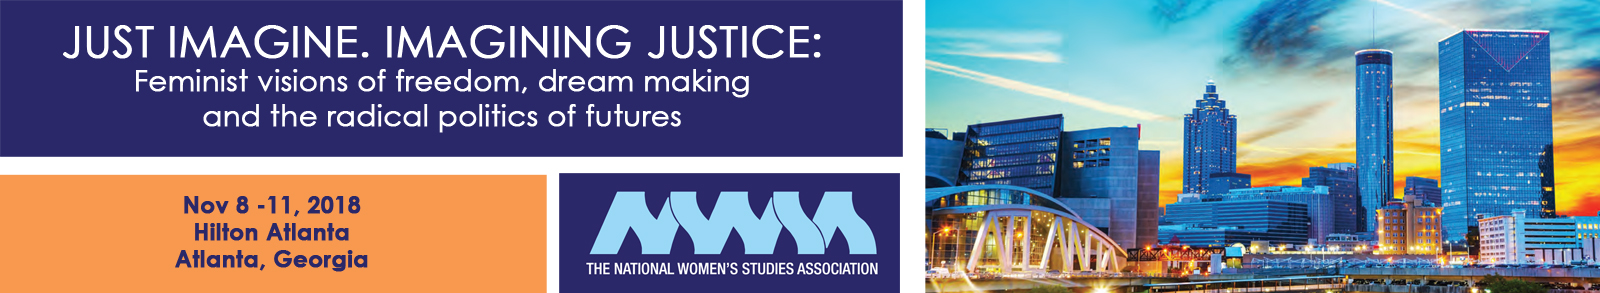 banner image of 2018 NWSA Annual Conference: Just Imagine. Imagining Justice: Feminist visions of freedom dream making and the radical politics of futures